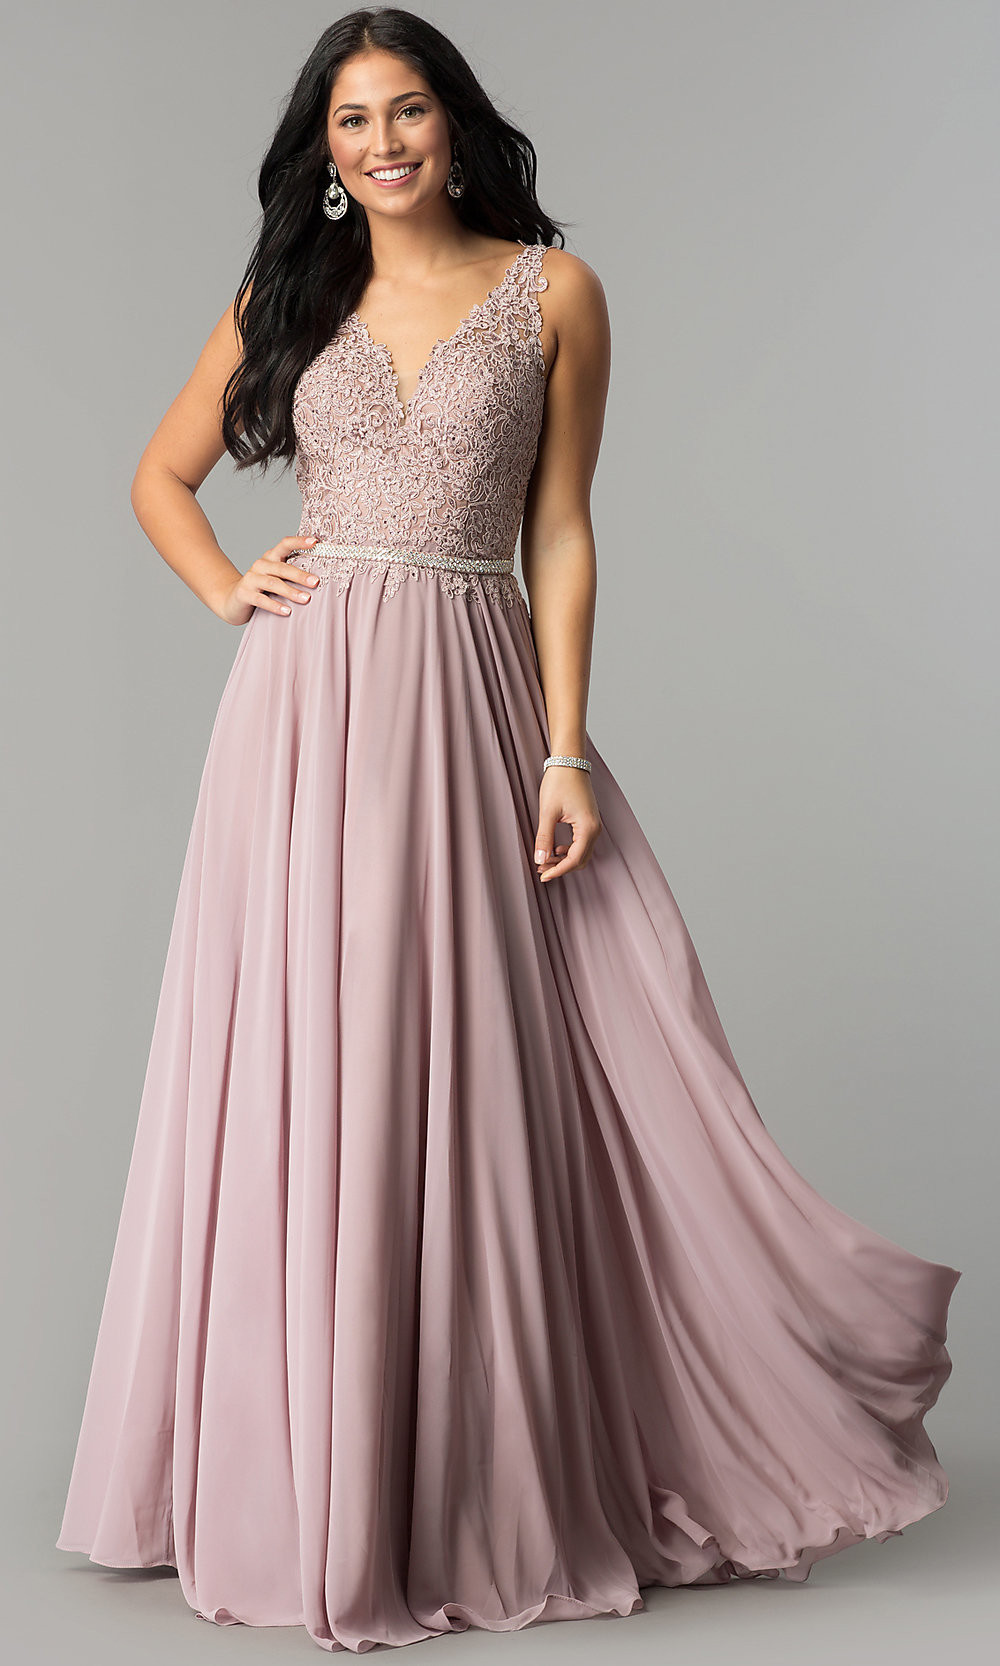 Chiffon Wedding Gown  Chiffon Long Wedding Guest Dress with Embroidered Lace